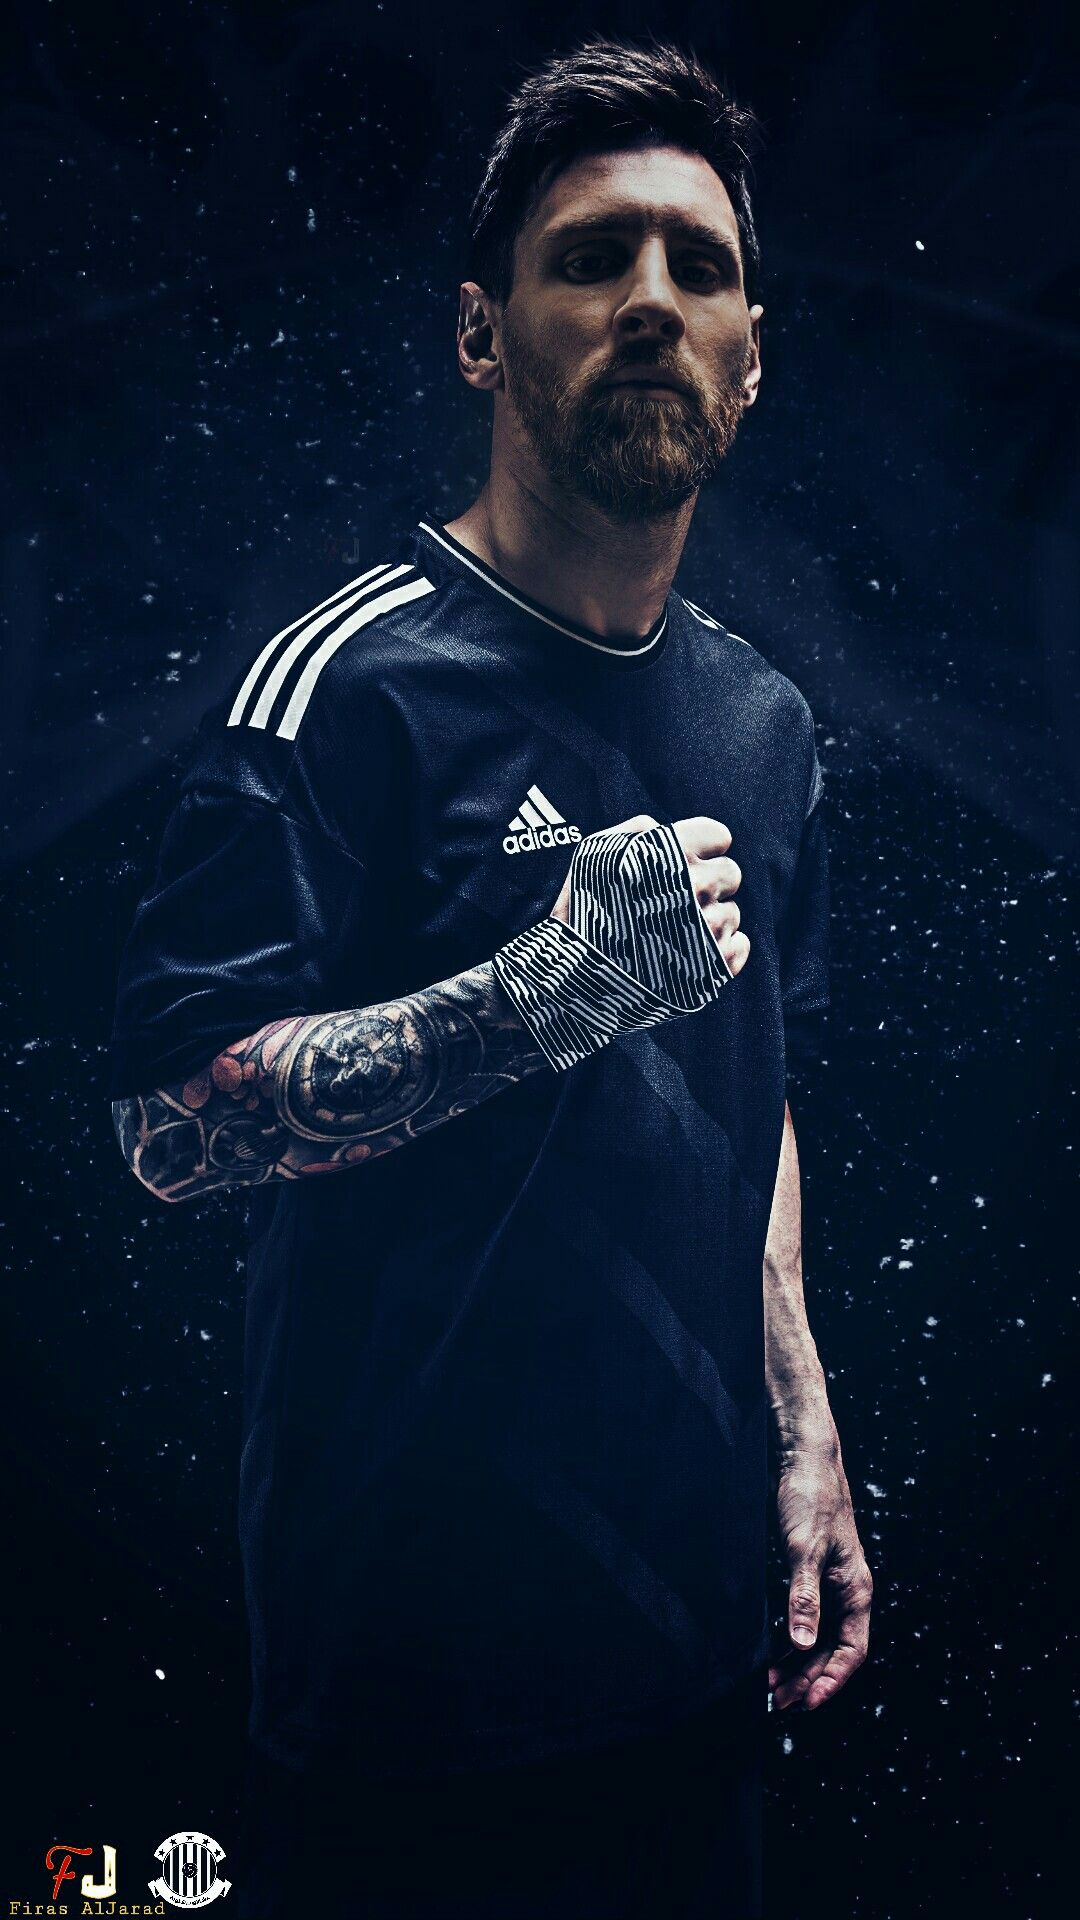 Wallper Messi Lm10 Pinterest Messi Lionel Messi And